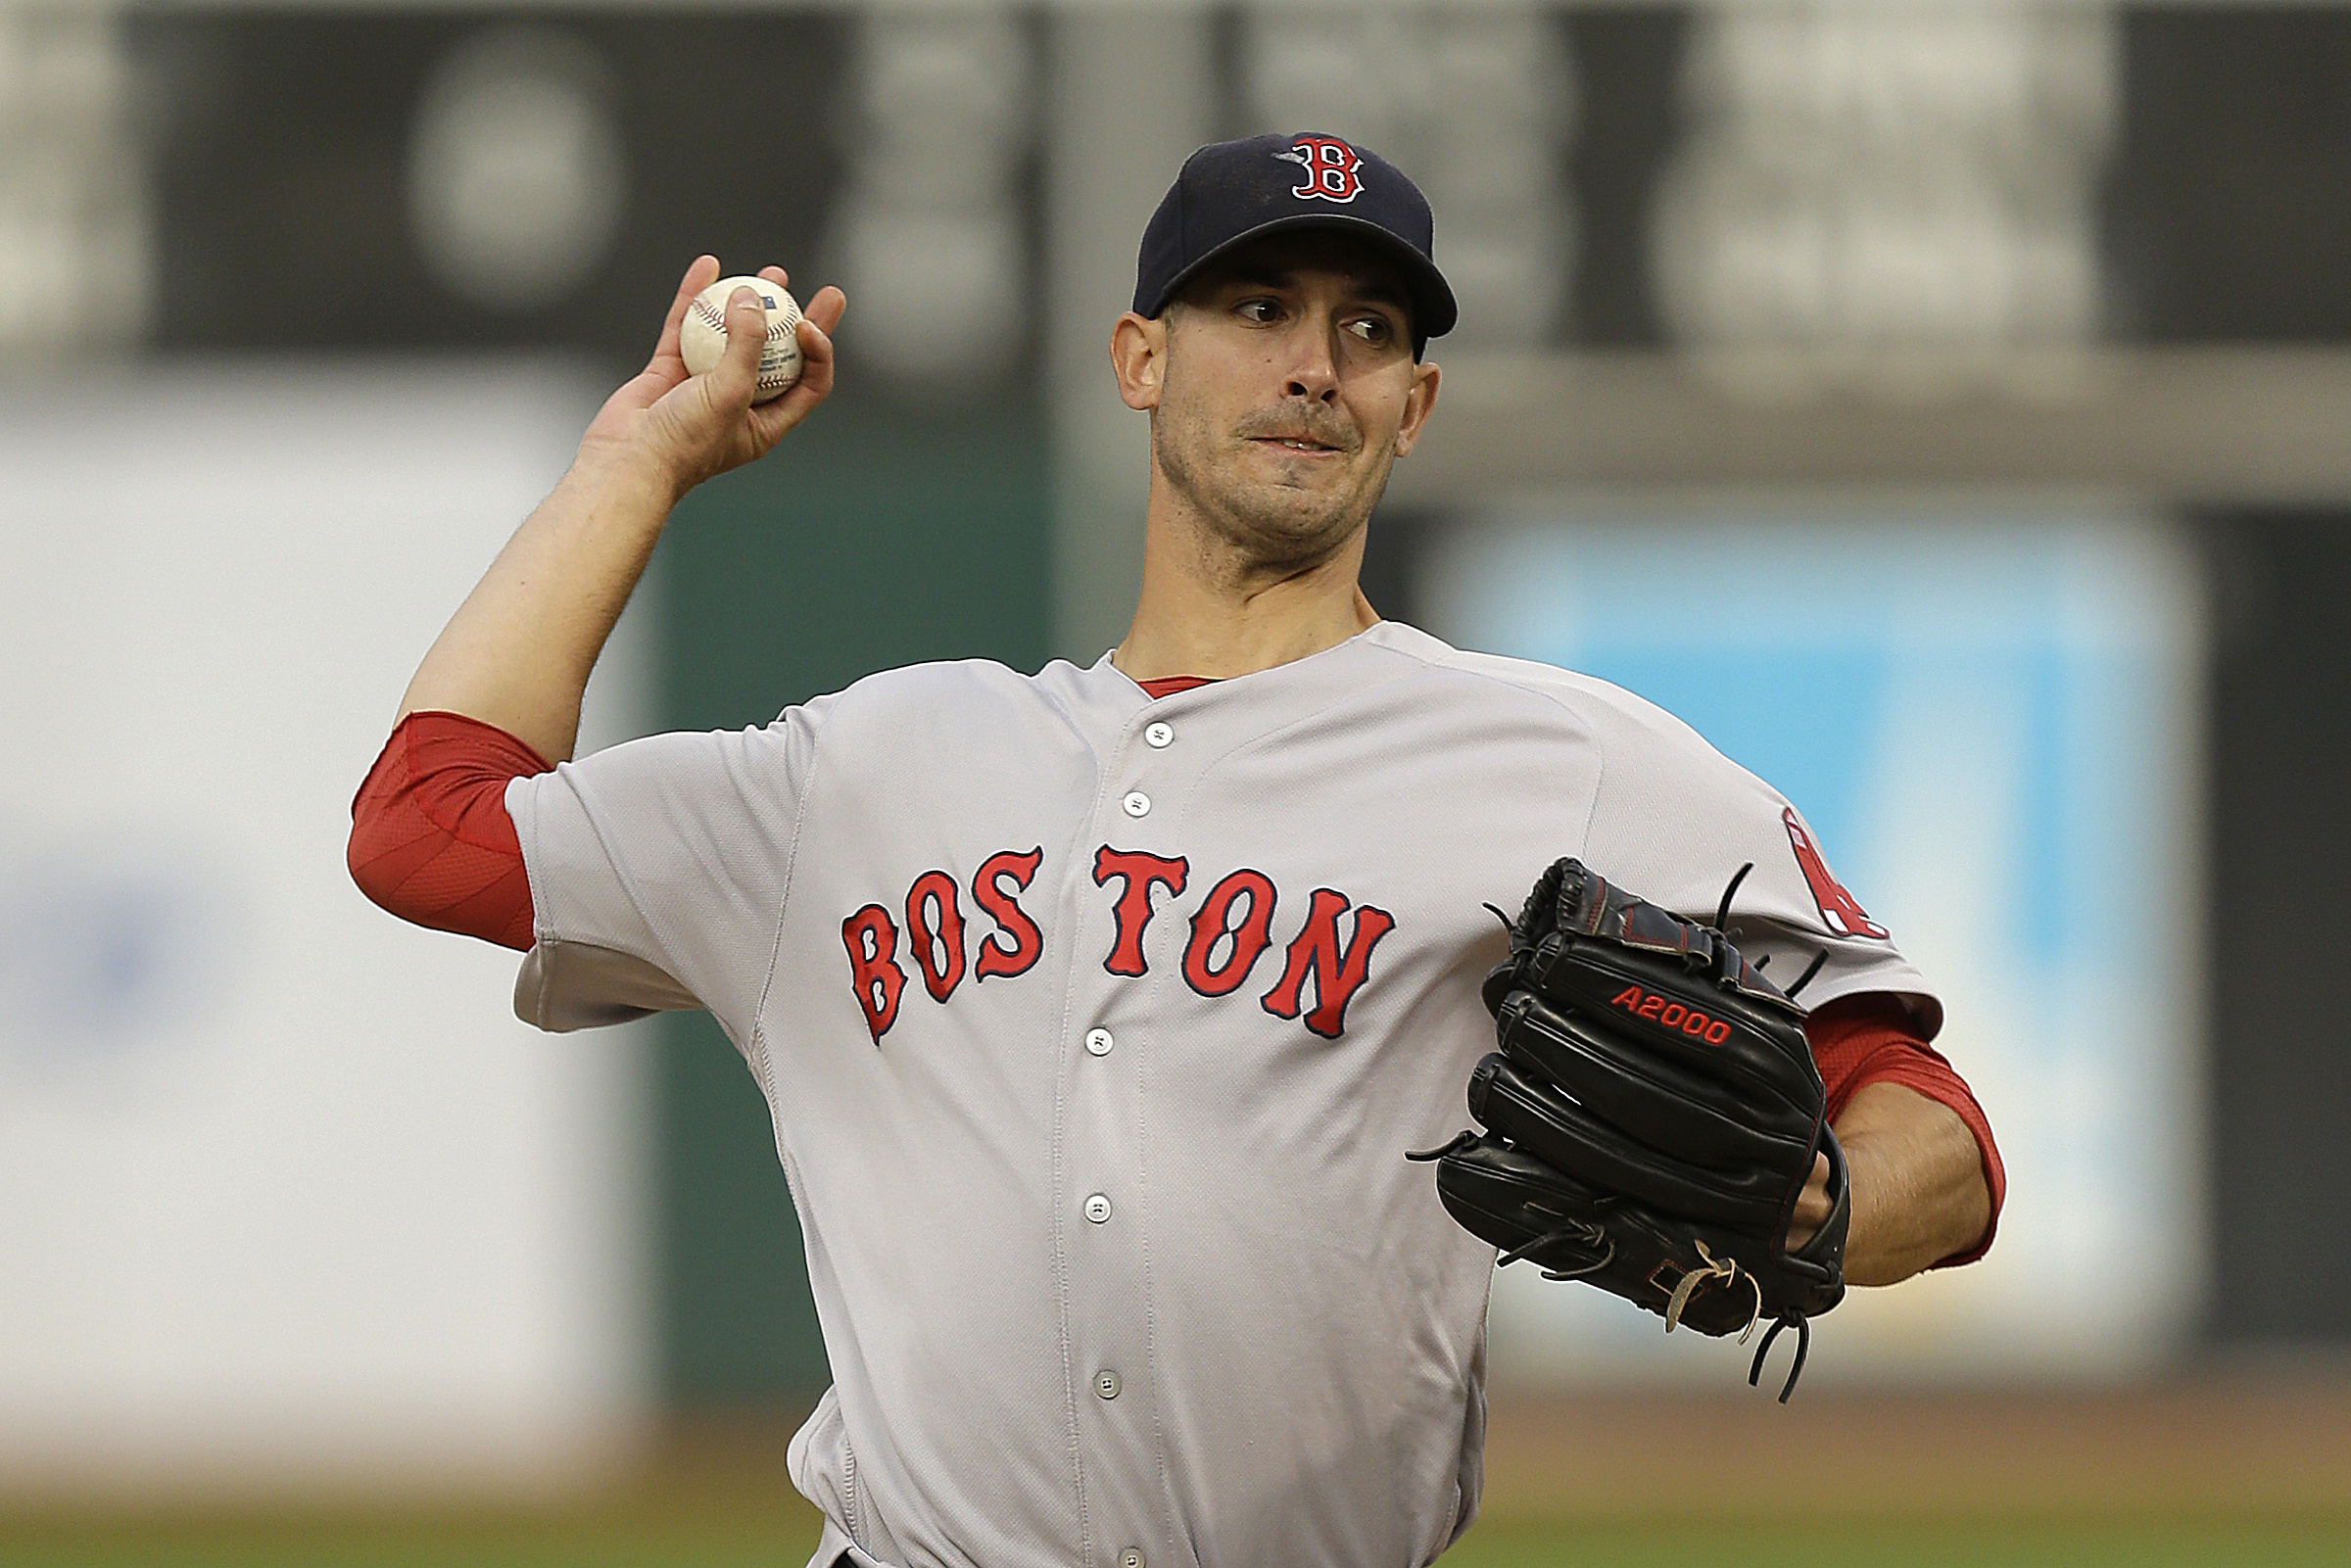 Boston Red Sox pitcher Rick Porcello works against the Oakland Athletics in the first inning of a baseball game Saturday, Sept. 3, 2016, in Oakland, Calif. (AP Photo/Ben Margot)